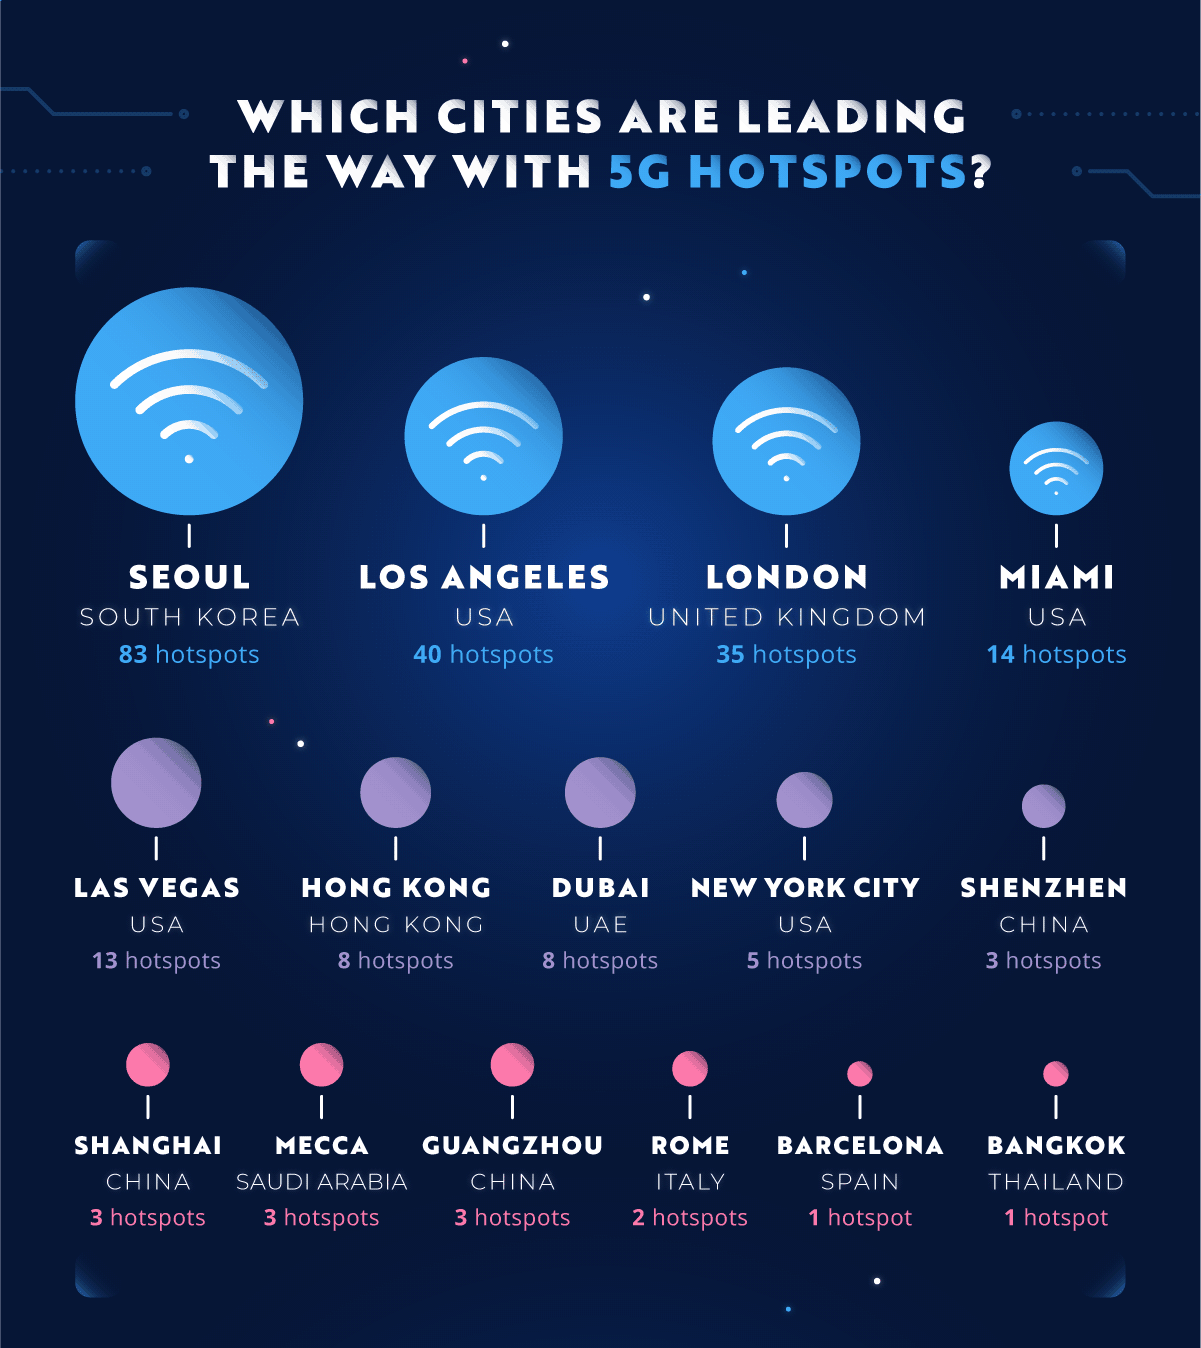 Cities Leading With 5G Hotposts